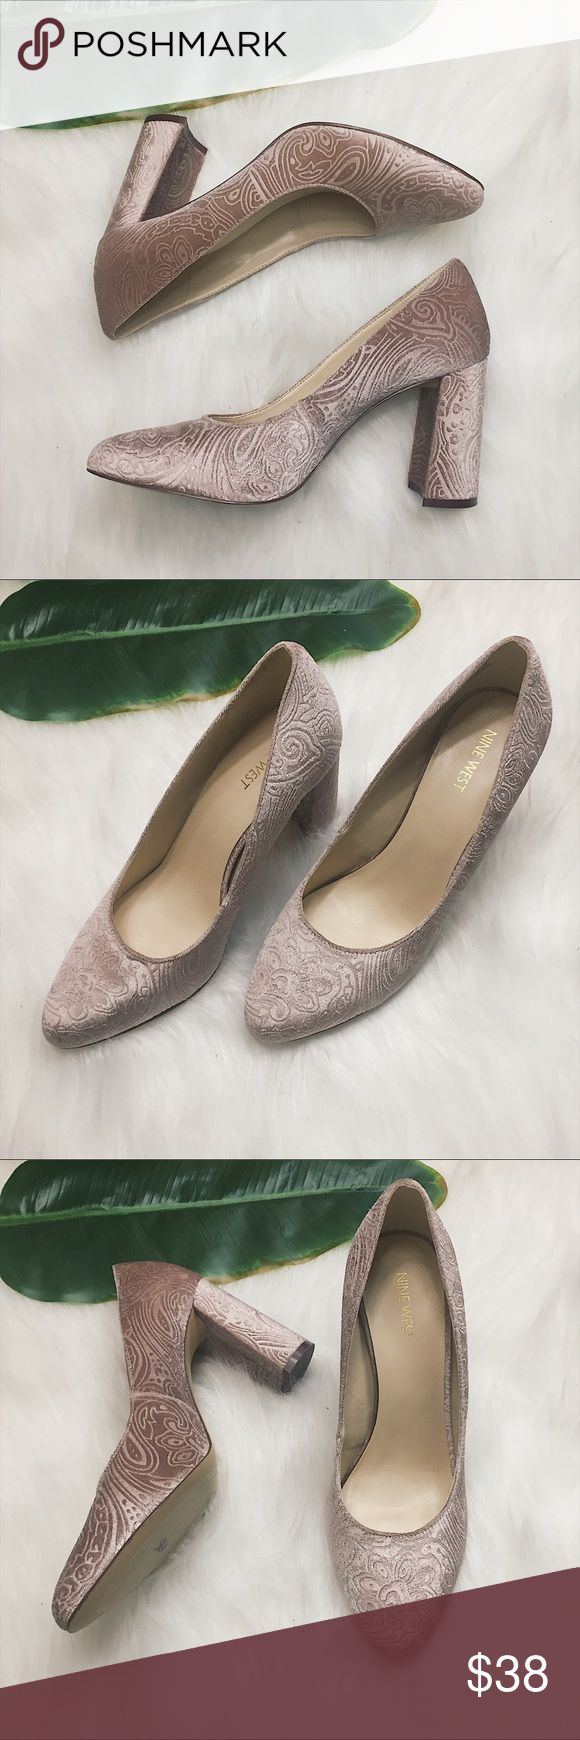 """Women's Nine West Jayvee Dusty Pink Pin Up Pumps Retro pin up style dusty pink Nine West Jayvee velour heels  Excellent, like new condition  Size 10 Textile upper Man made lining 3.5"""" heel   📷 Please see all photos - we do our best to accurately capture condition, measurements & all blemishes in our photos 📷   🌼 Smoke/pet free home 🌼  🌸 All clothing is freshly laundered before shipment. 🌸  ✨ Reasonable Offers Accepted ✨ Nine West Shoes Heels"""